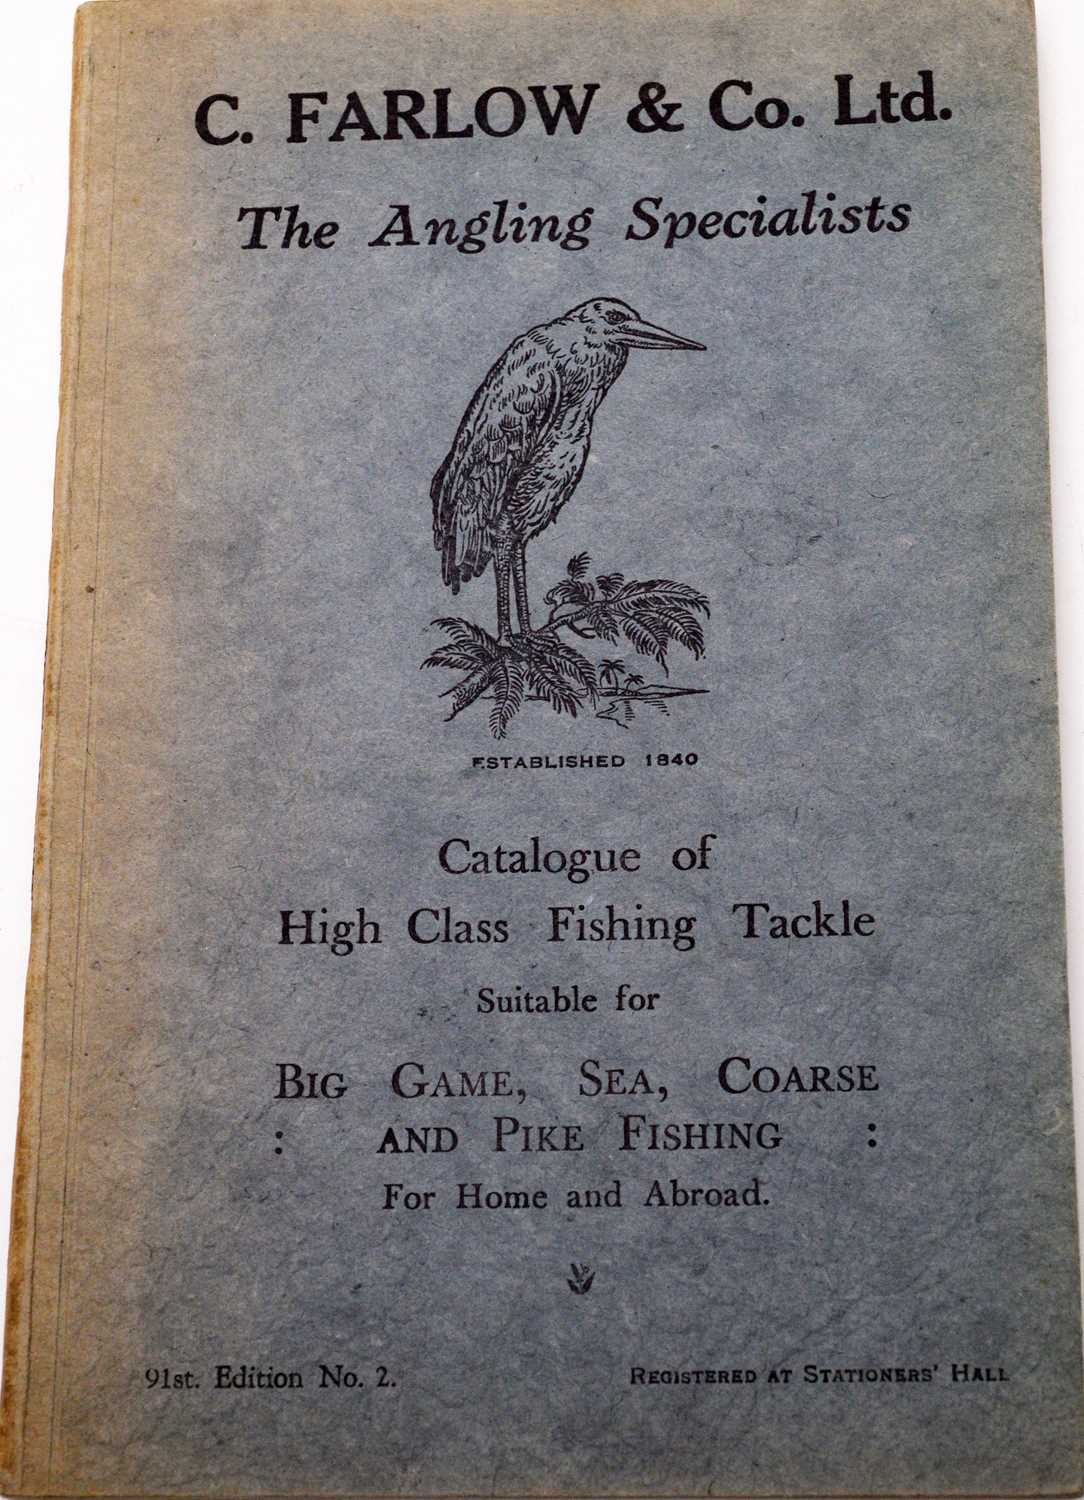 Catalogues of angling interest - Image 4 of 4